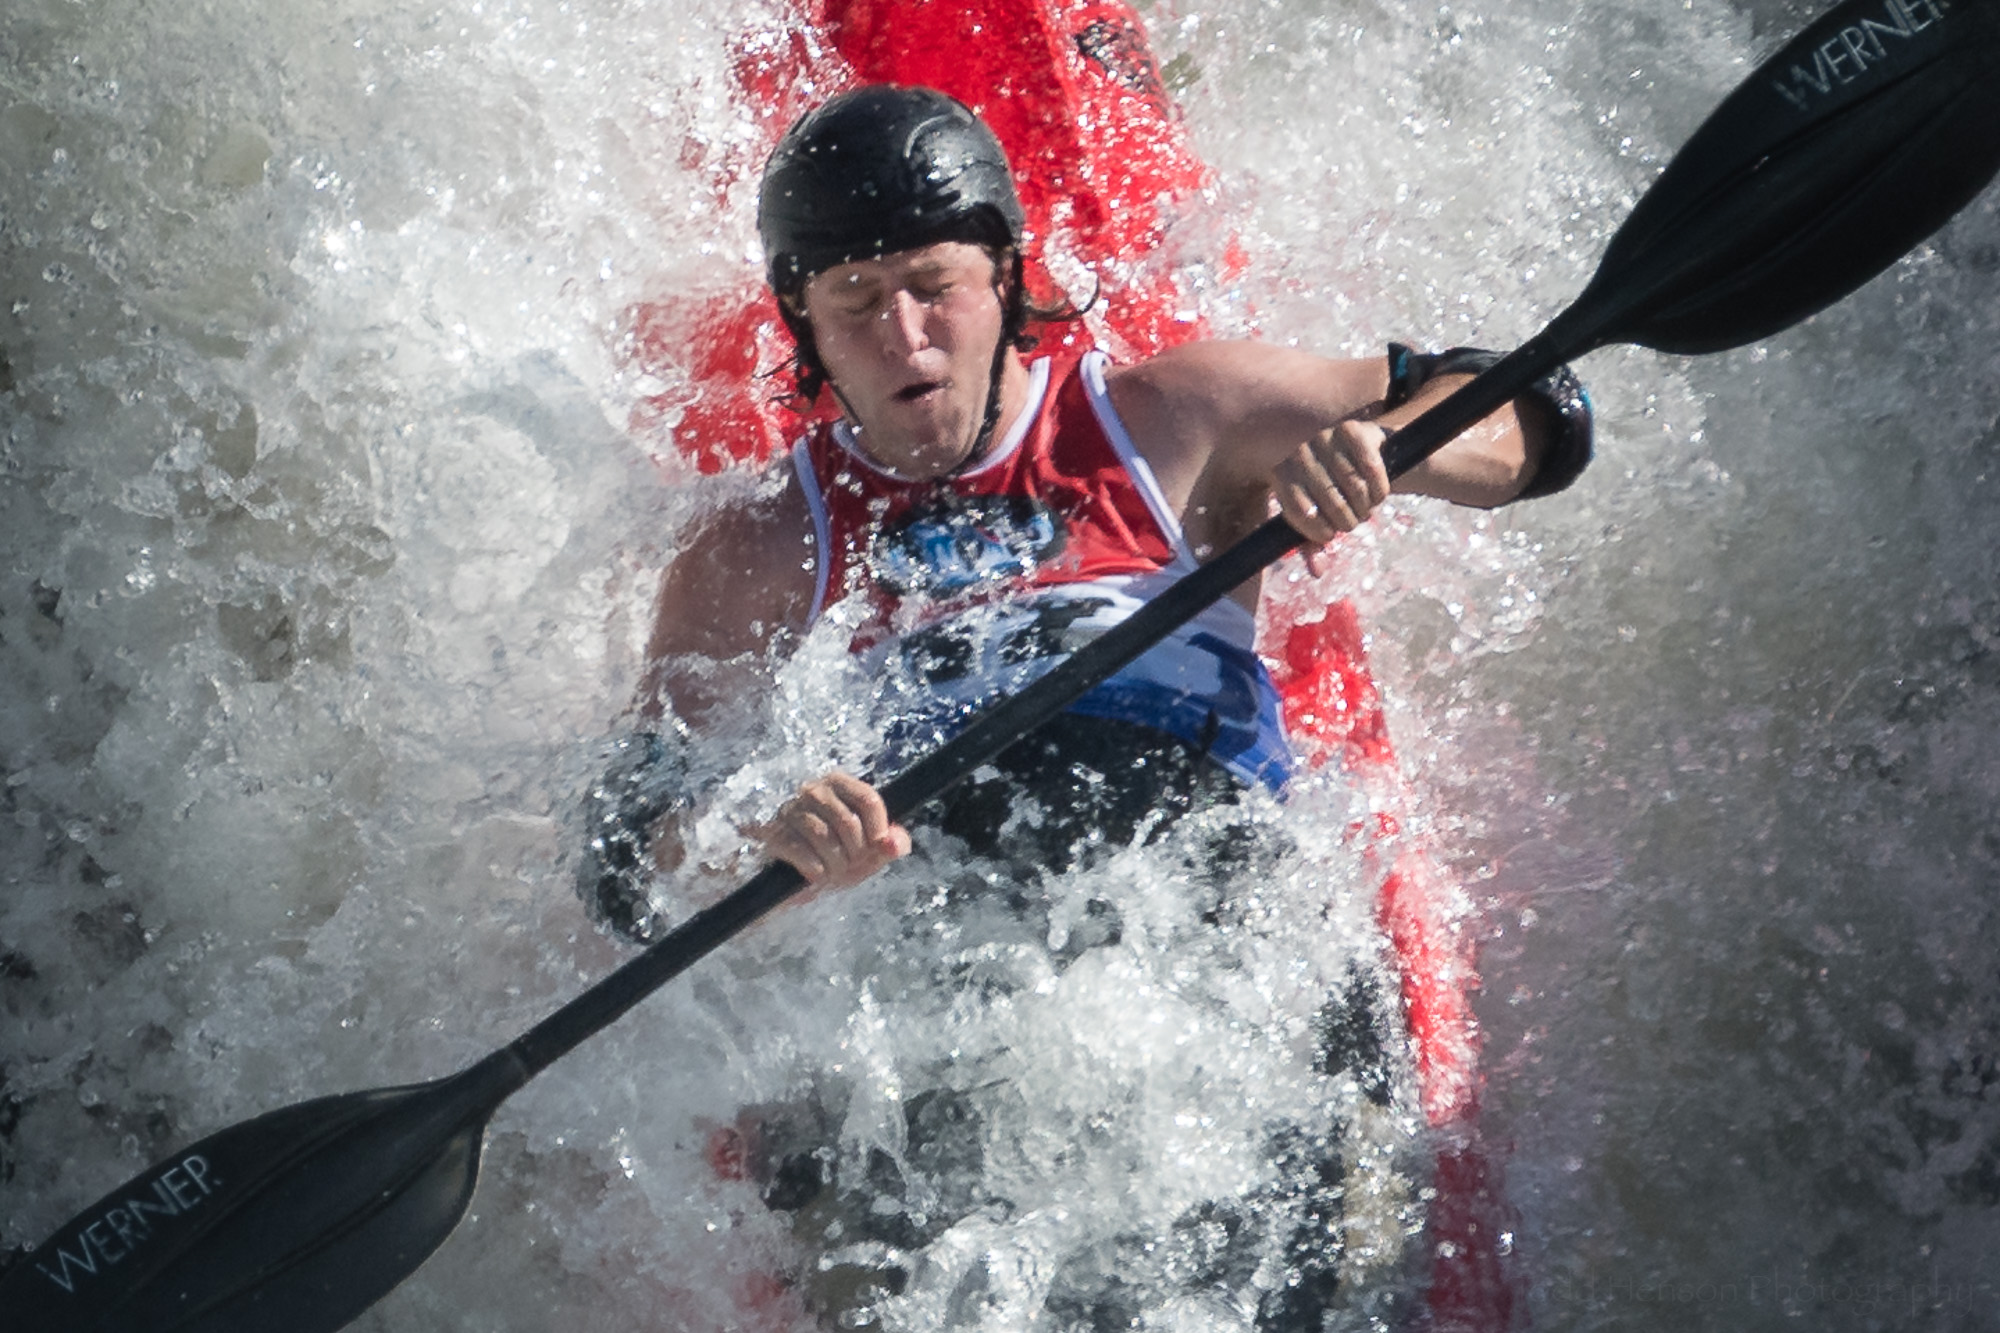 Closeup of Jules Krinsky Kayaking The Fingers at Great Falls